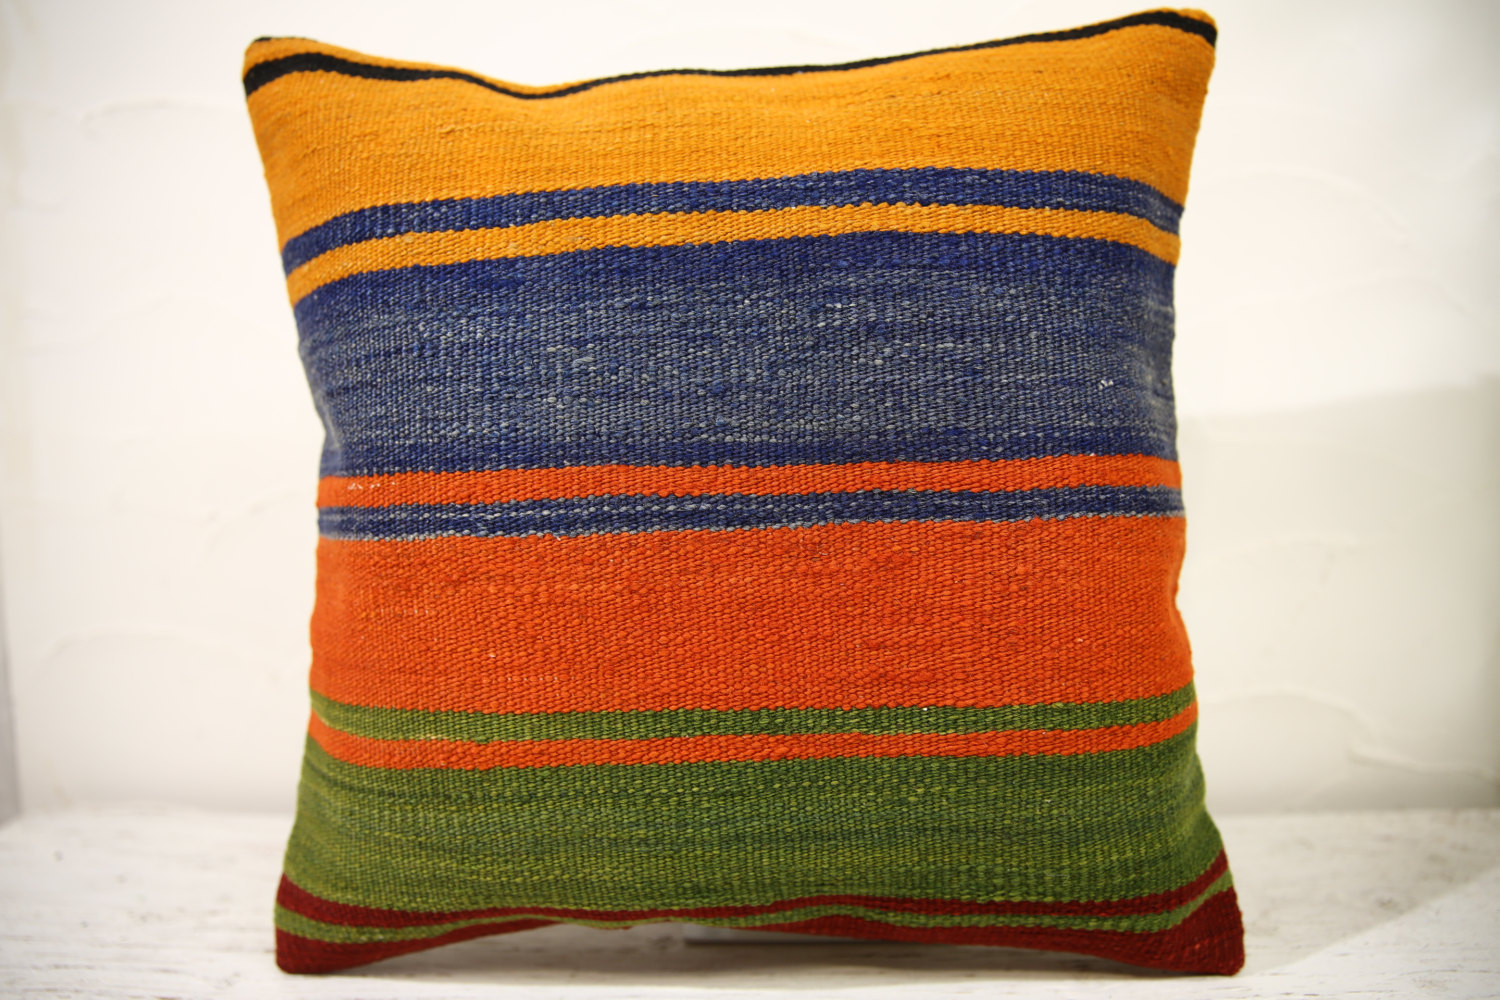 Kilim Pillows | 16x16 | Decorative Pillows | 942 | Accent Pillows,turkish pillow